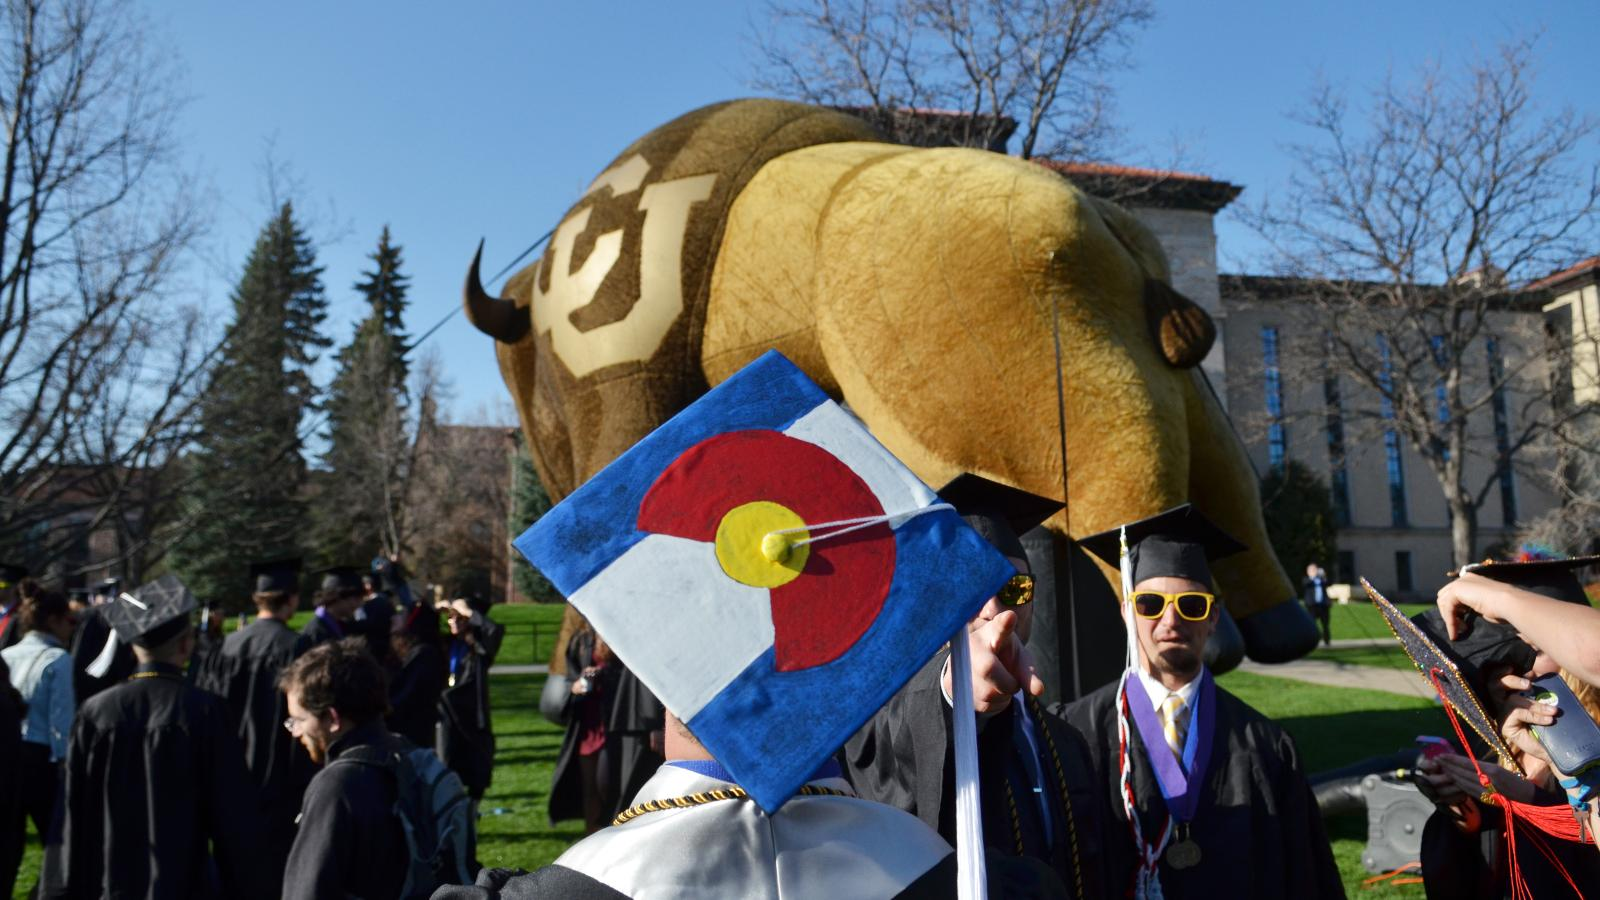 Graduate with CO State flag on mortar board in front of inflatable Alphie